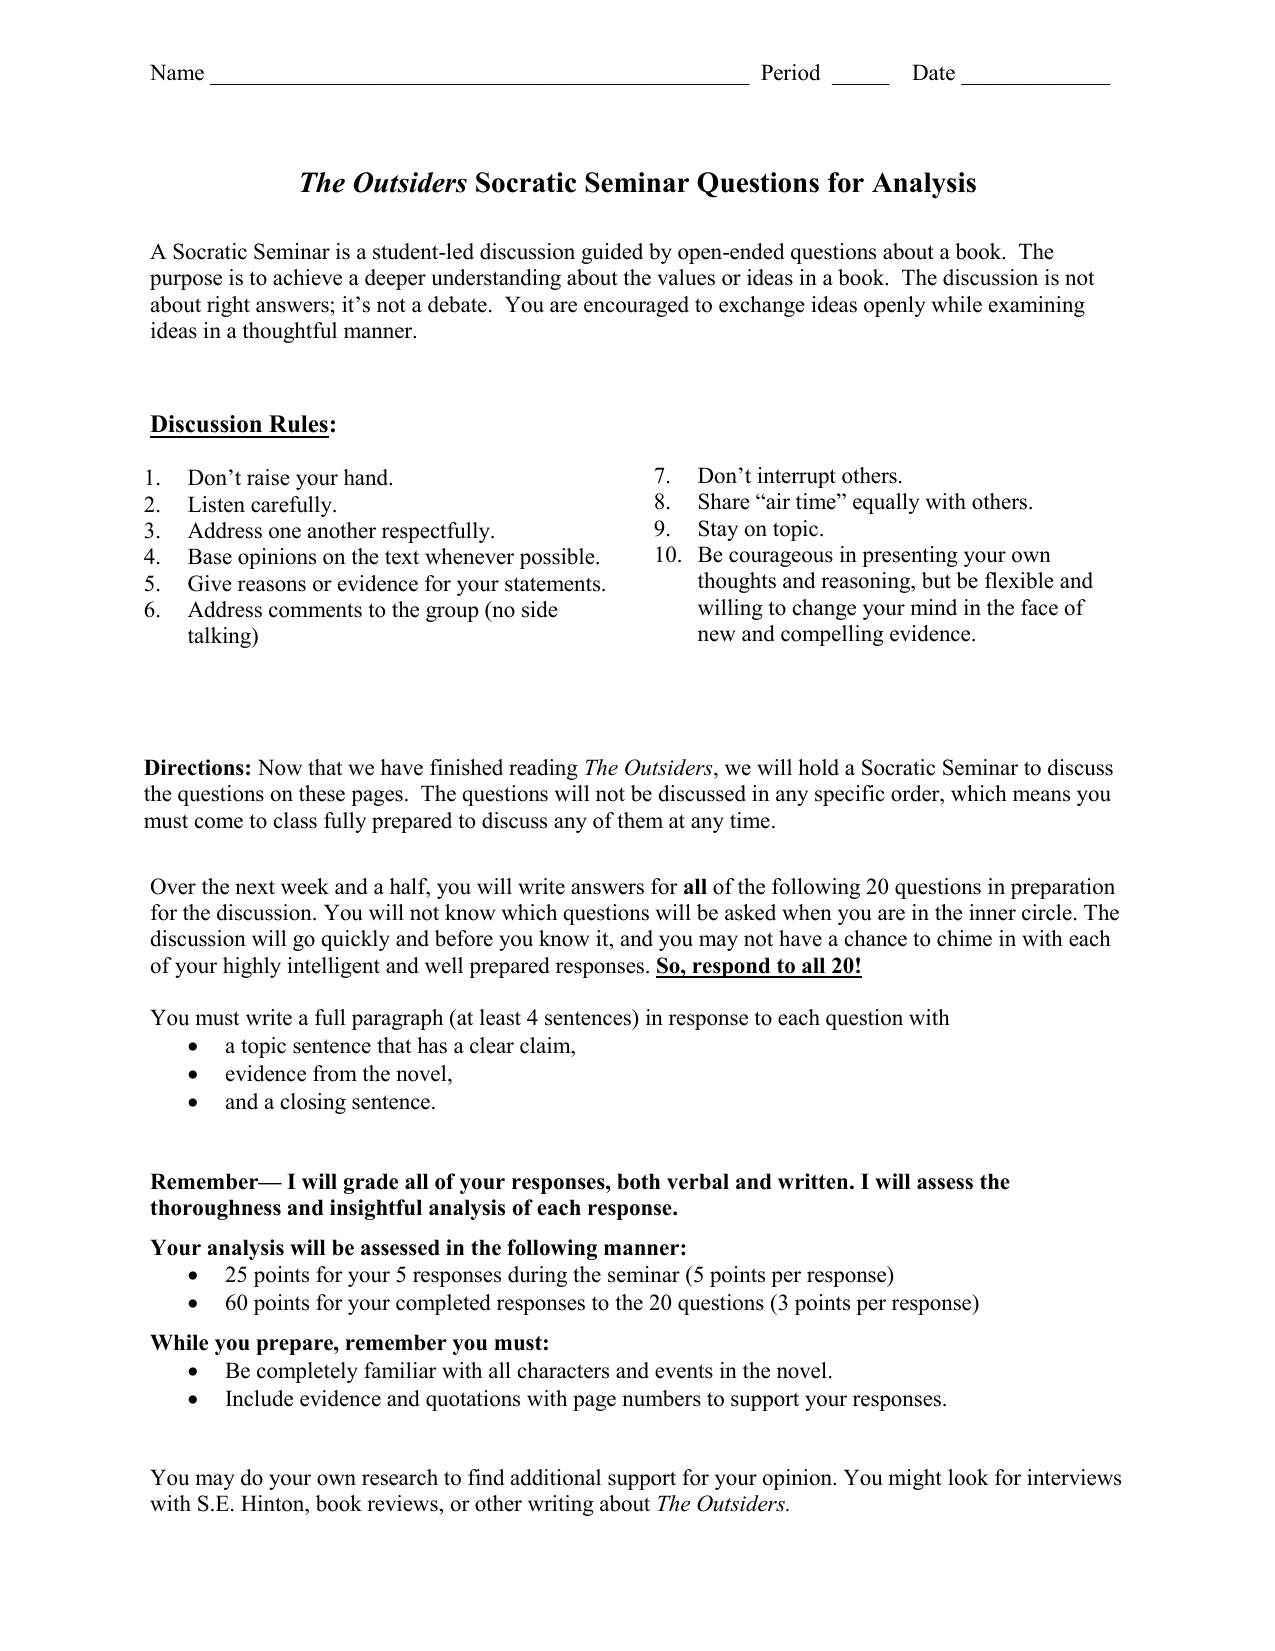 Socratic Seminar The Outsiders Eafbdafbcdccepng Help Writing Lyrics also Thesis Statement For Comparison Essay  College Application Writer 3rd Edition Online